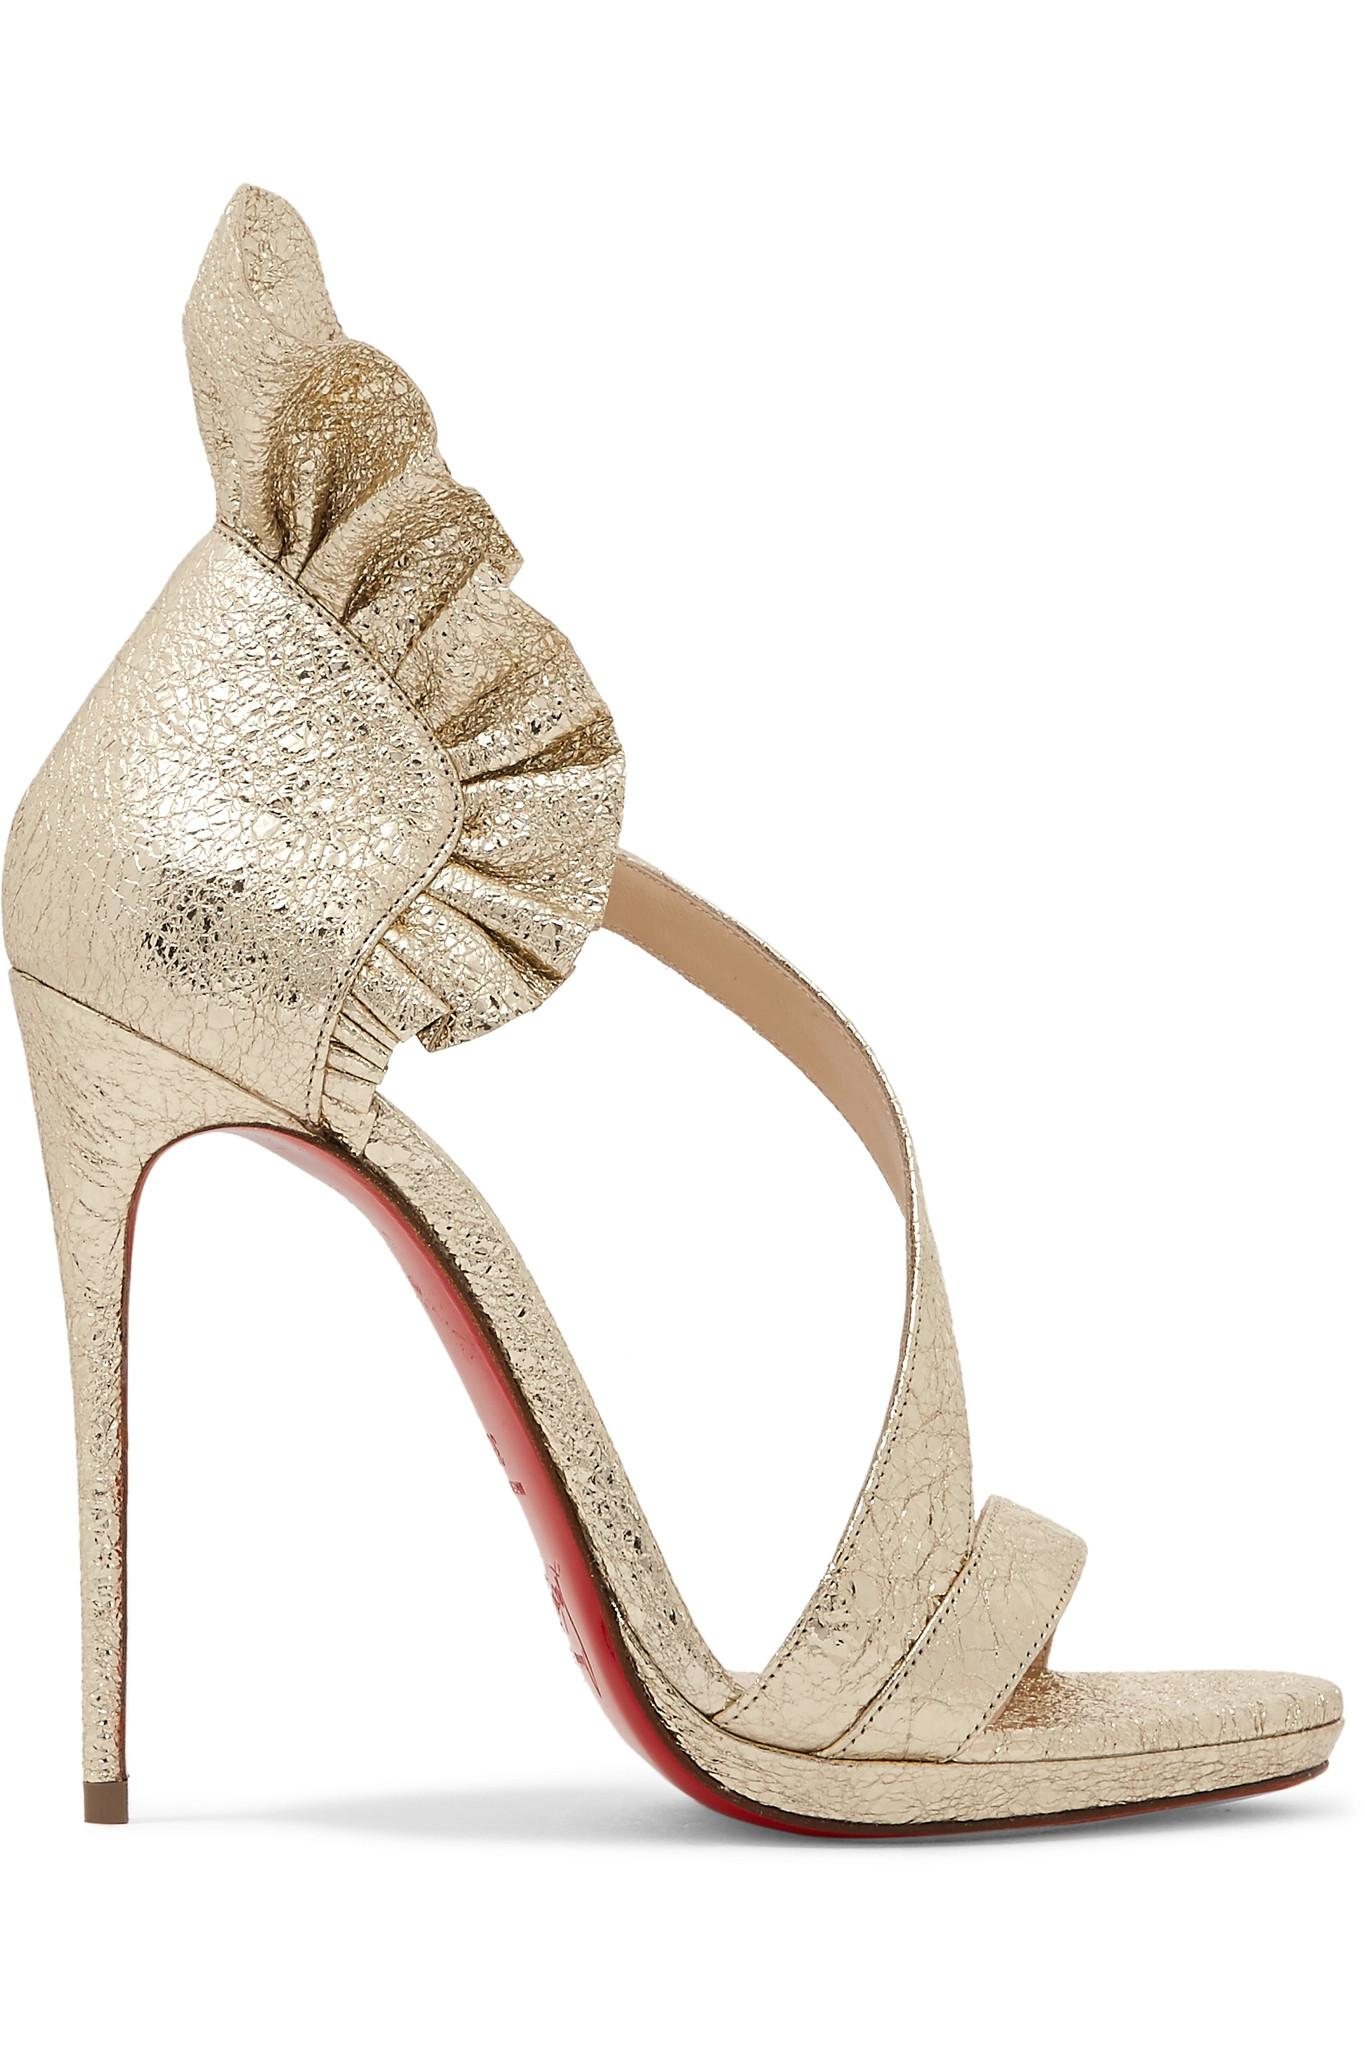 0f18c5b5157d1 Christian Louboutin. Women s Colankle 120 Ruffled Metallic Cracked-leather  Sandals